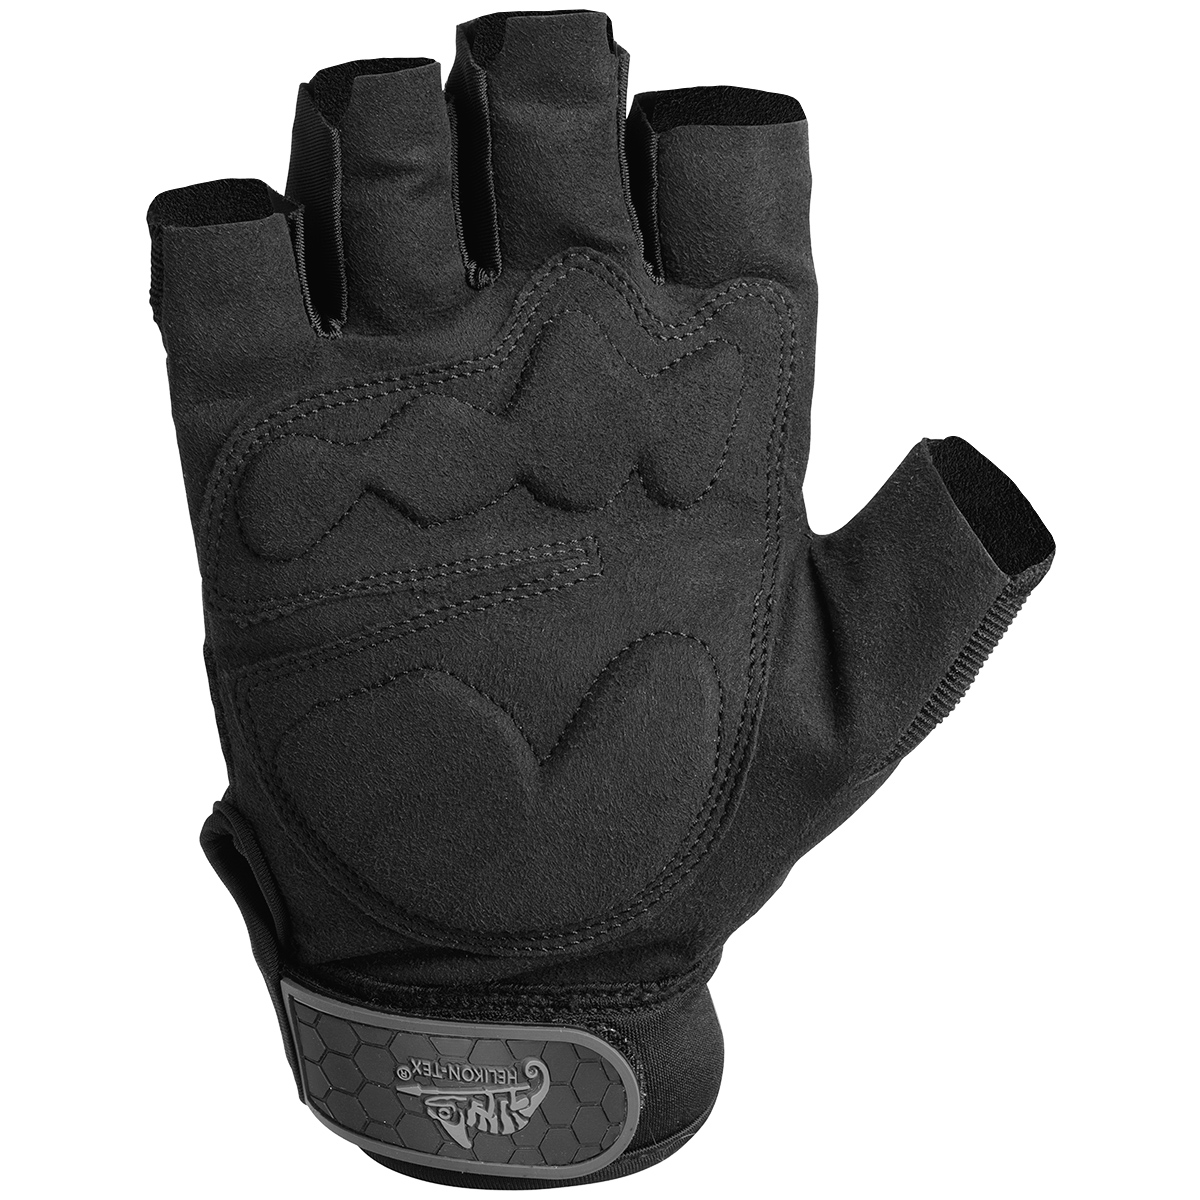 Fingerless impact gloves - Sentinel Military Airsoft Patrol Hfg Fingerless Tactical Army Combat Gloves Helikon Black